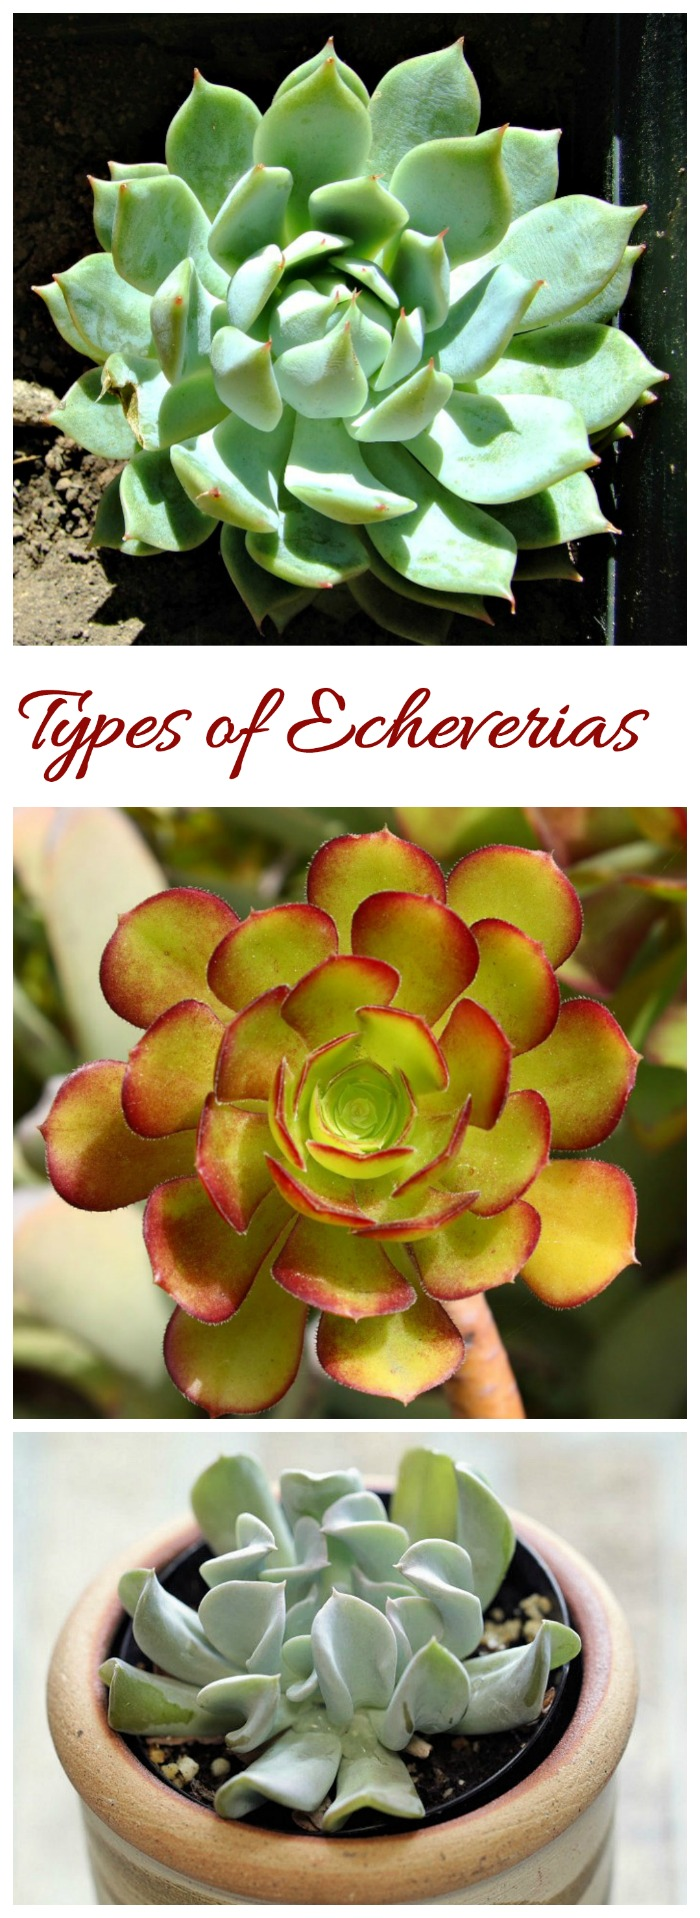 Echeverias identification. See various types of this succulent by name.